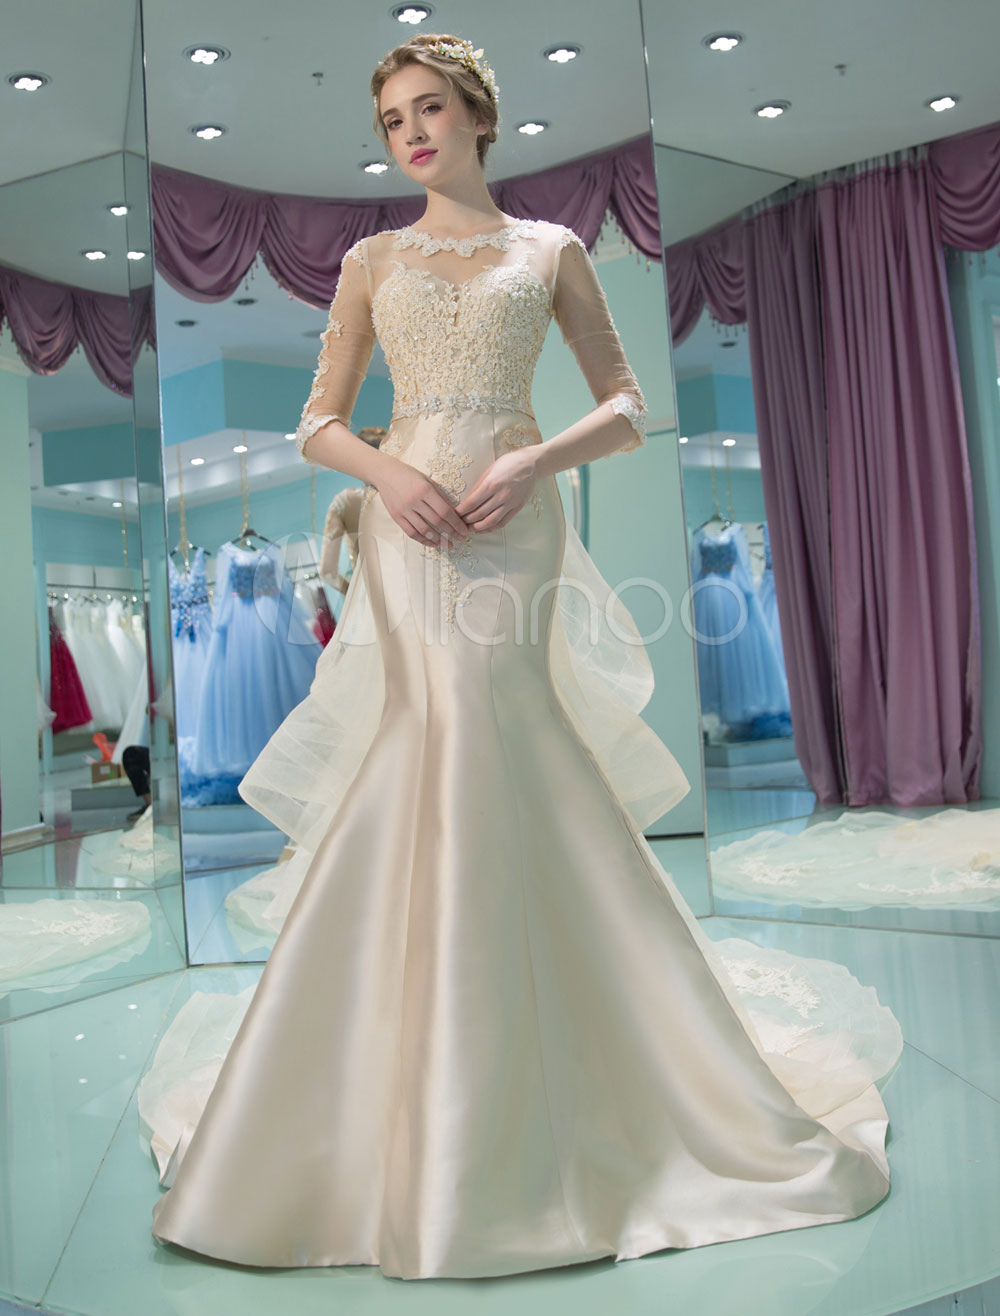 Champagne Wedding Dress Mermaid Half Sleeve Satin Bridal Dress ...